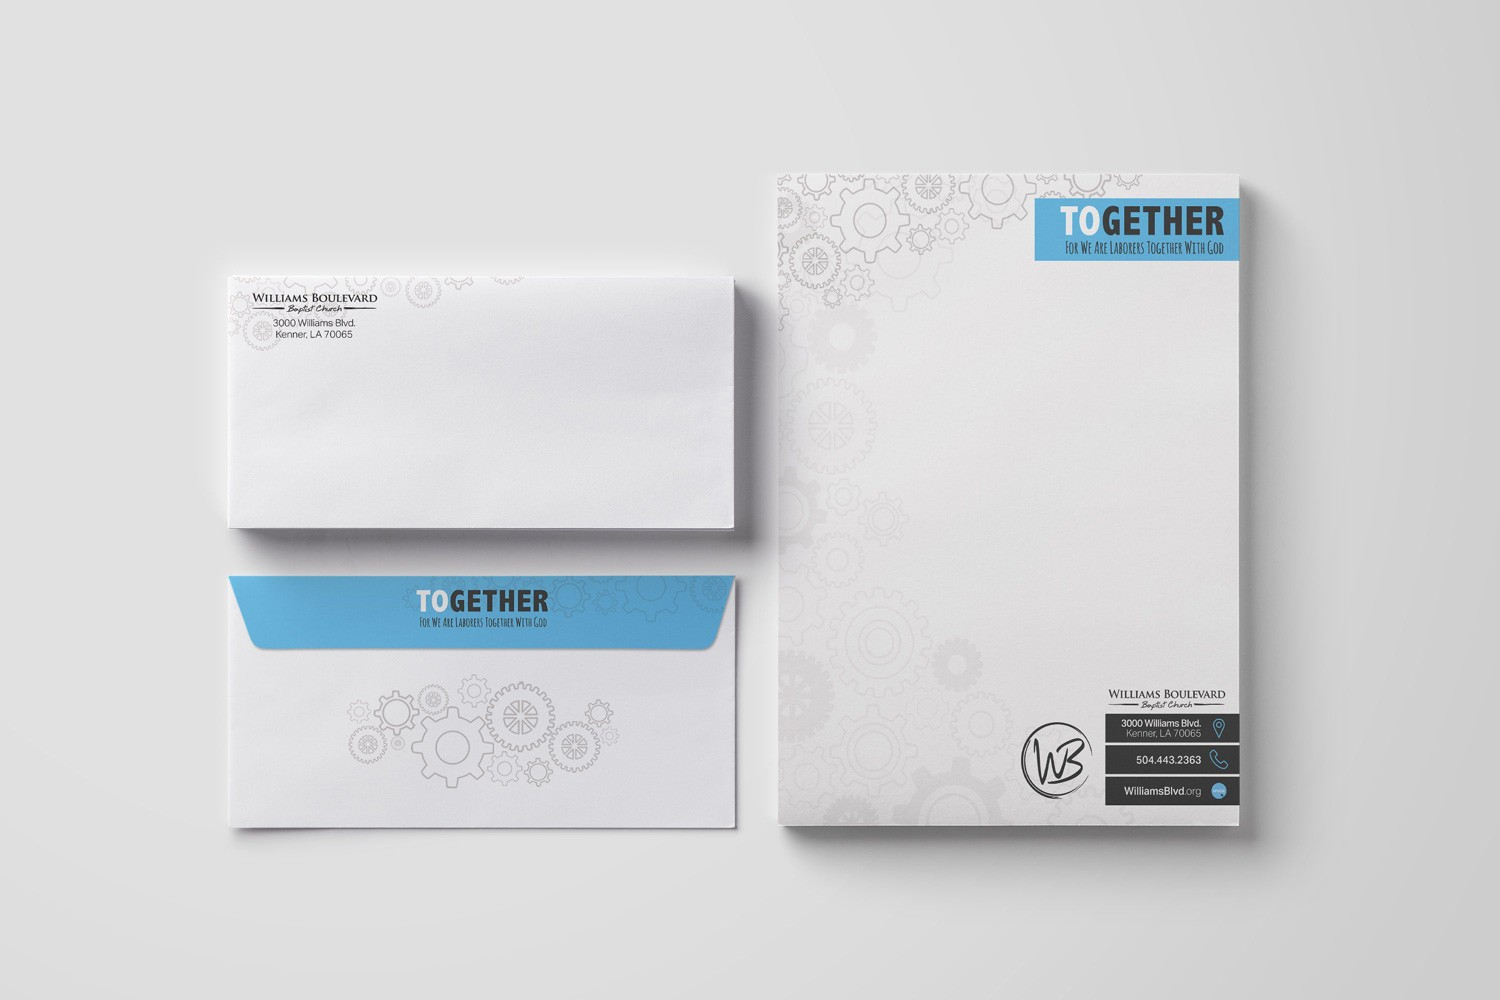 Letterhead & Envelopes for church capital campaign stewardship design and printing services examples, ideas by Abstract Union